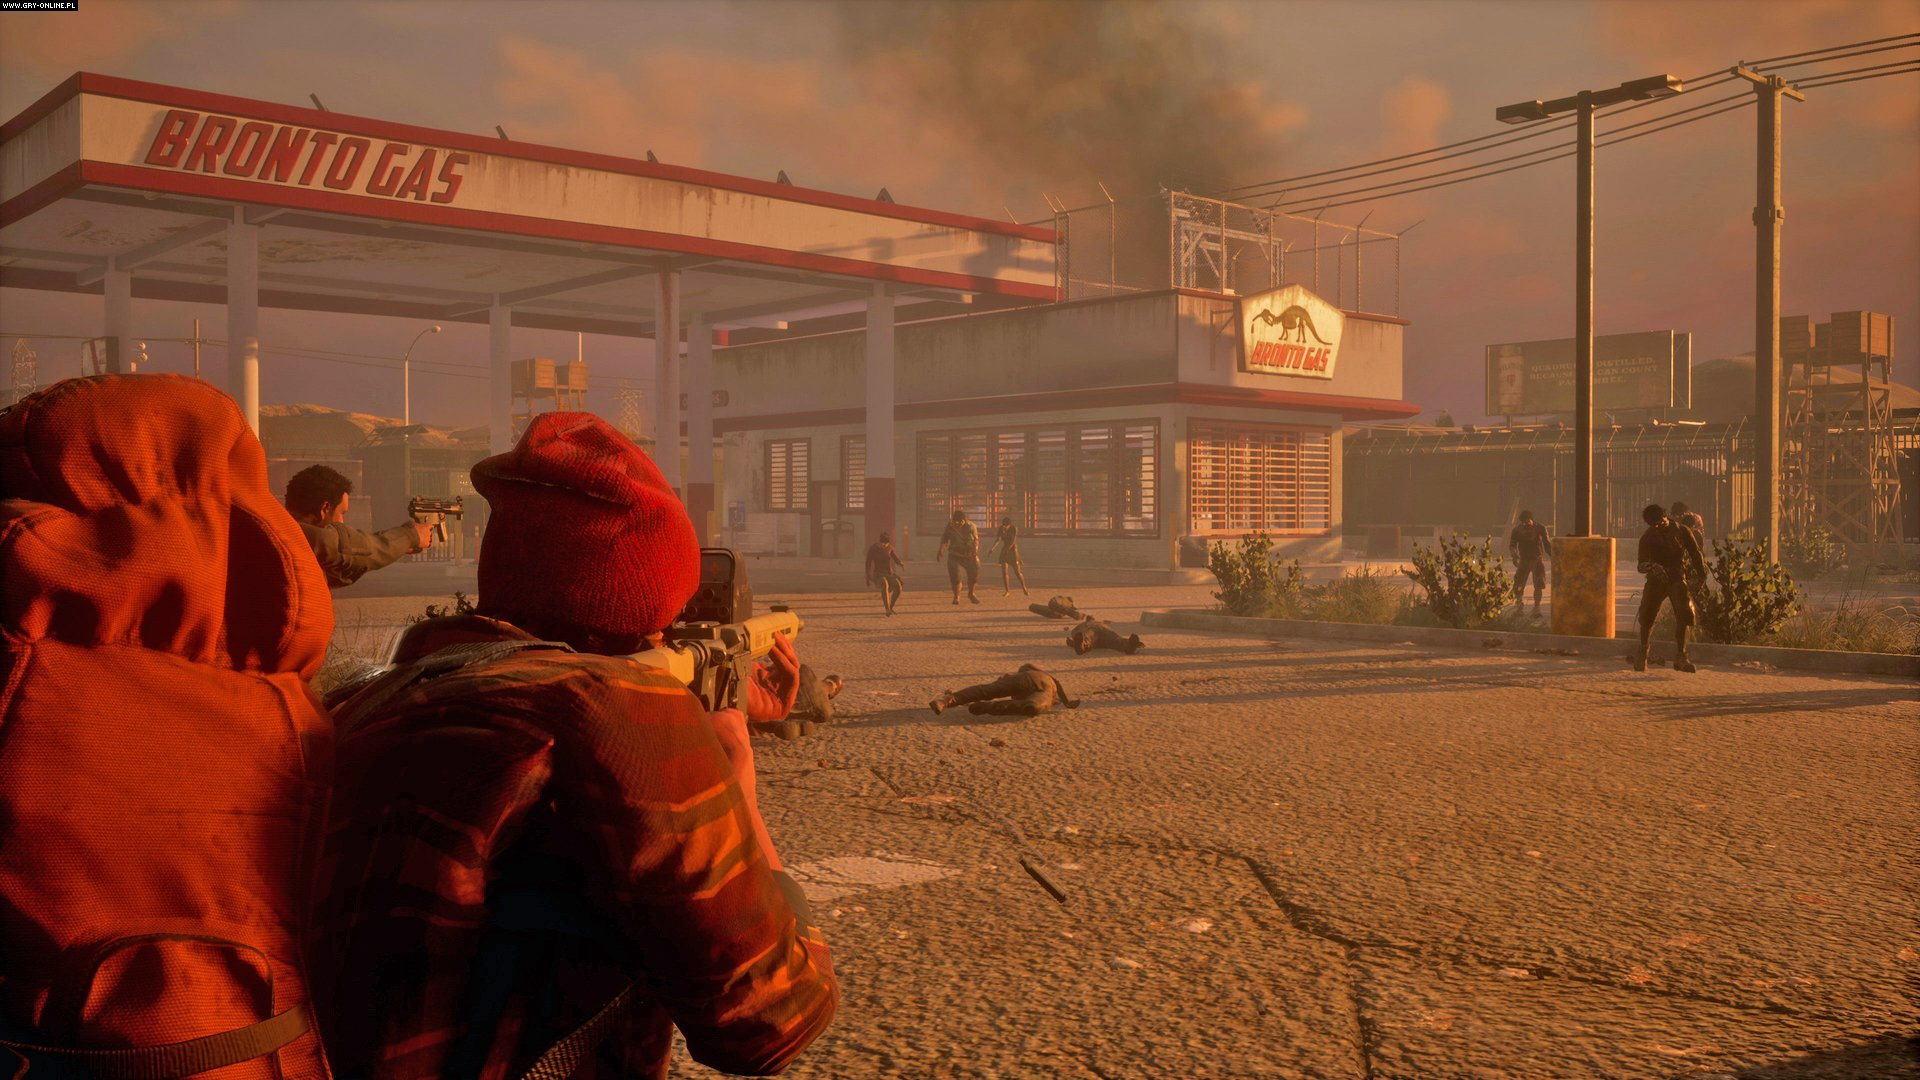 State of Decay 2 PC, XONE Games Image 1/13, Undead Labs, Microsoft Studios